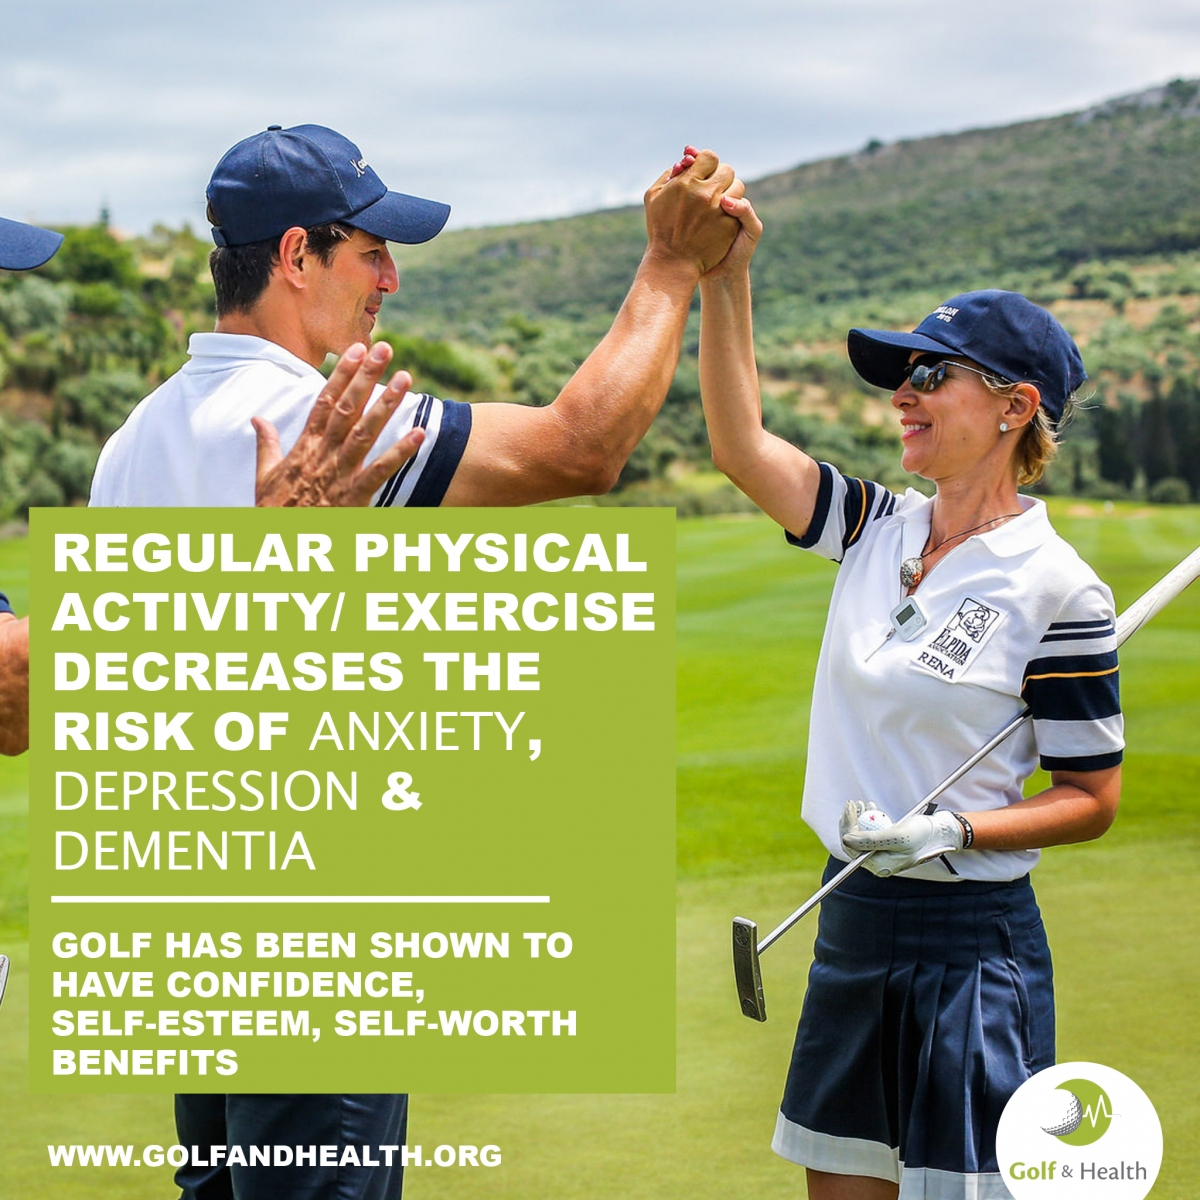 Golf-and-Health-Fact_Anxiety-Depression-Dementia_02